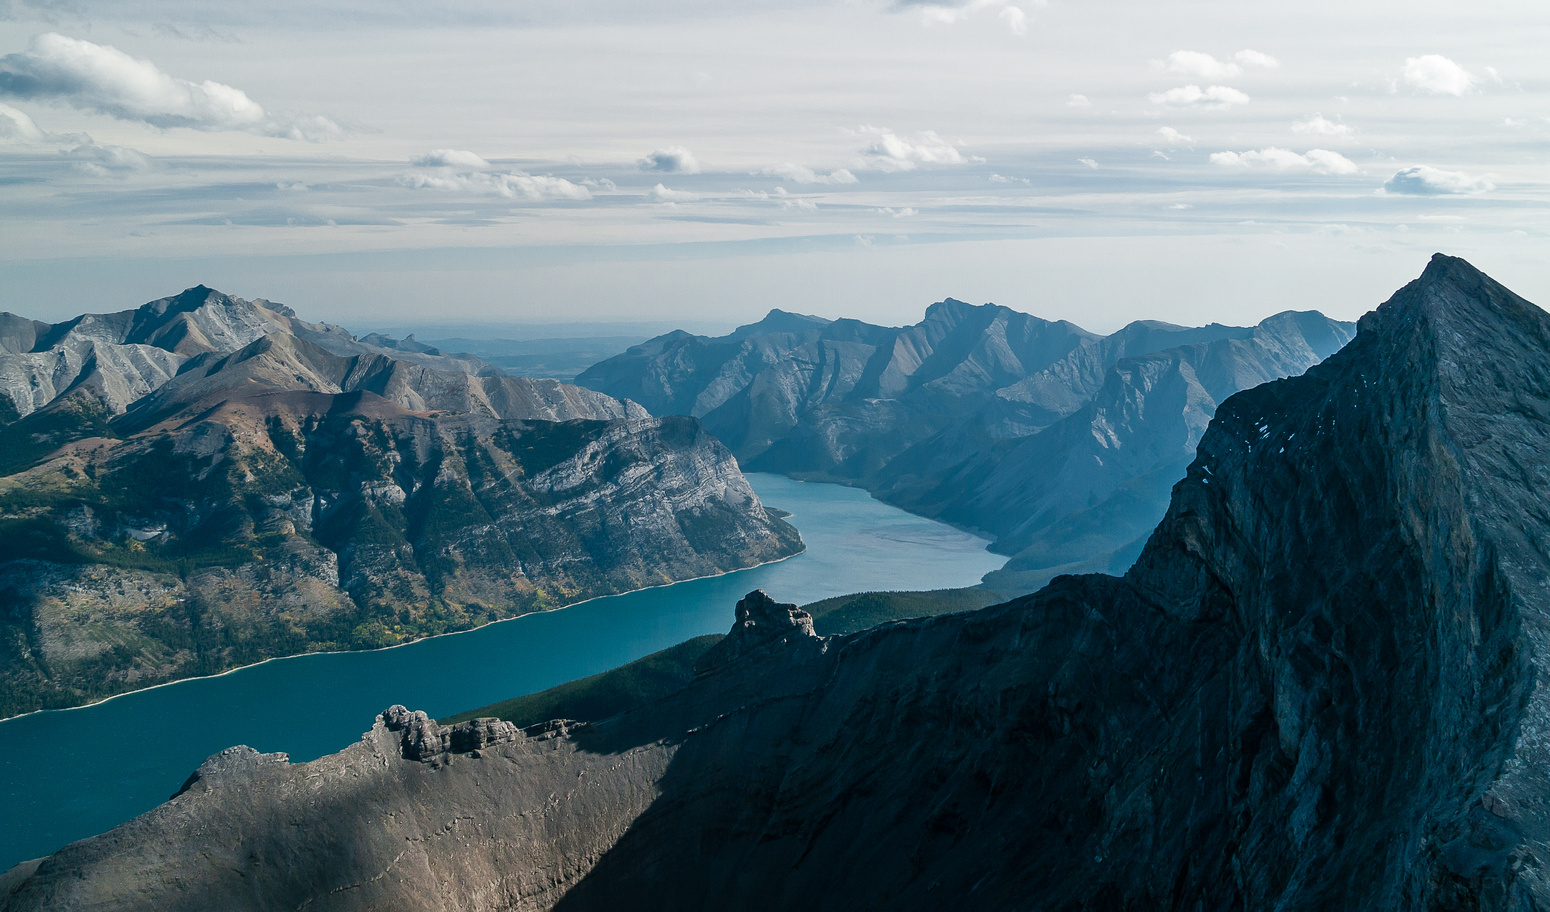 Looking down Lake Minnewanka to Costigan, Orient Point, Saddle and Girouard (R).